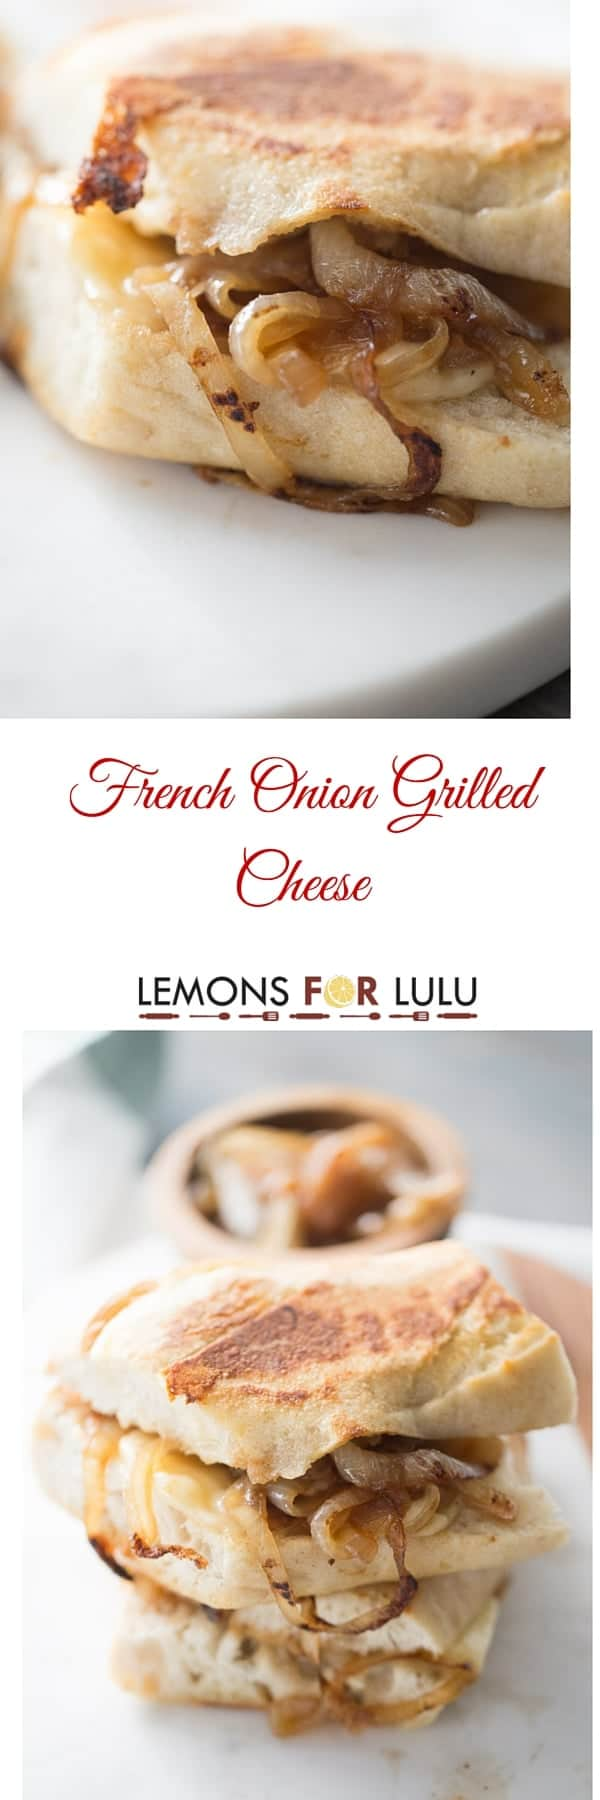 Caramelized onions and lots of gooey cheese come together to taste like the classic French onion soup!! lemonsforlulu.com